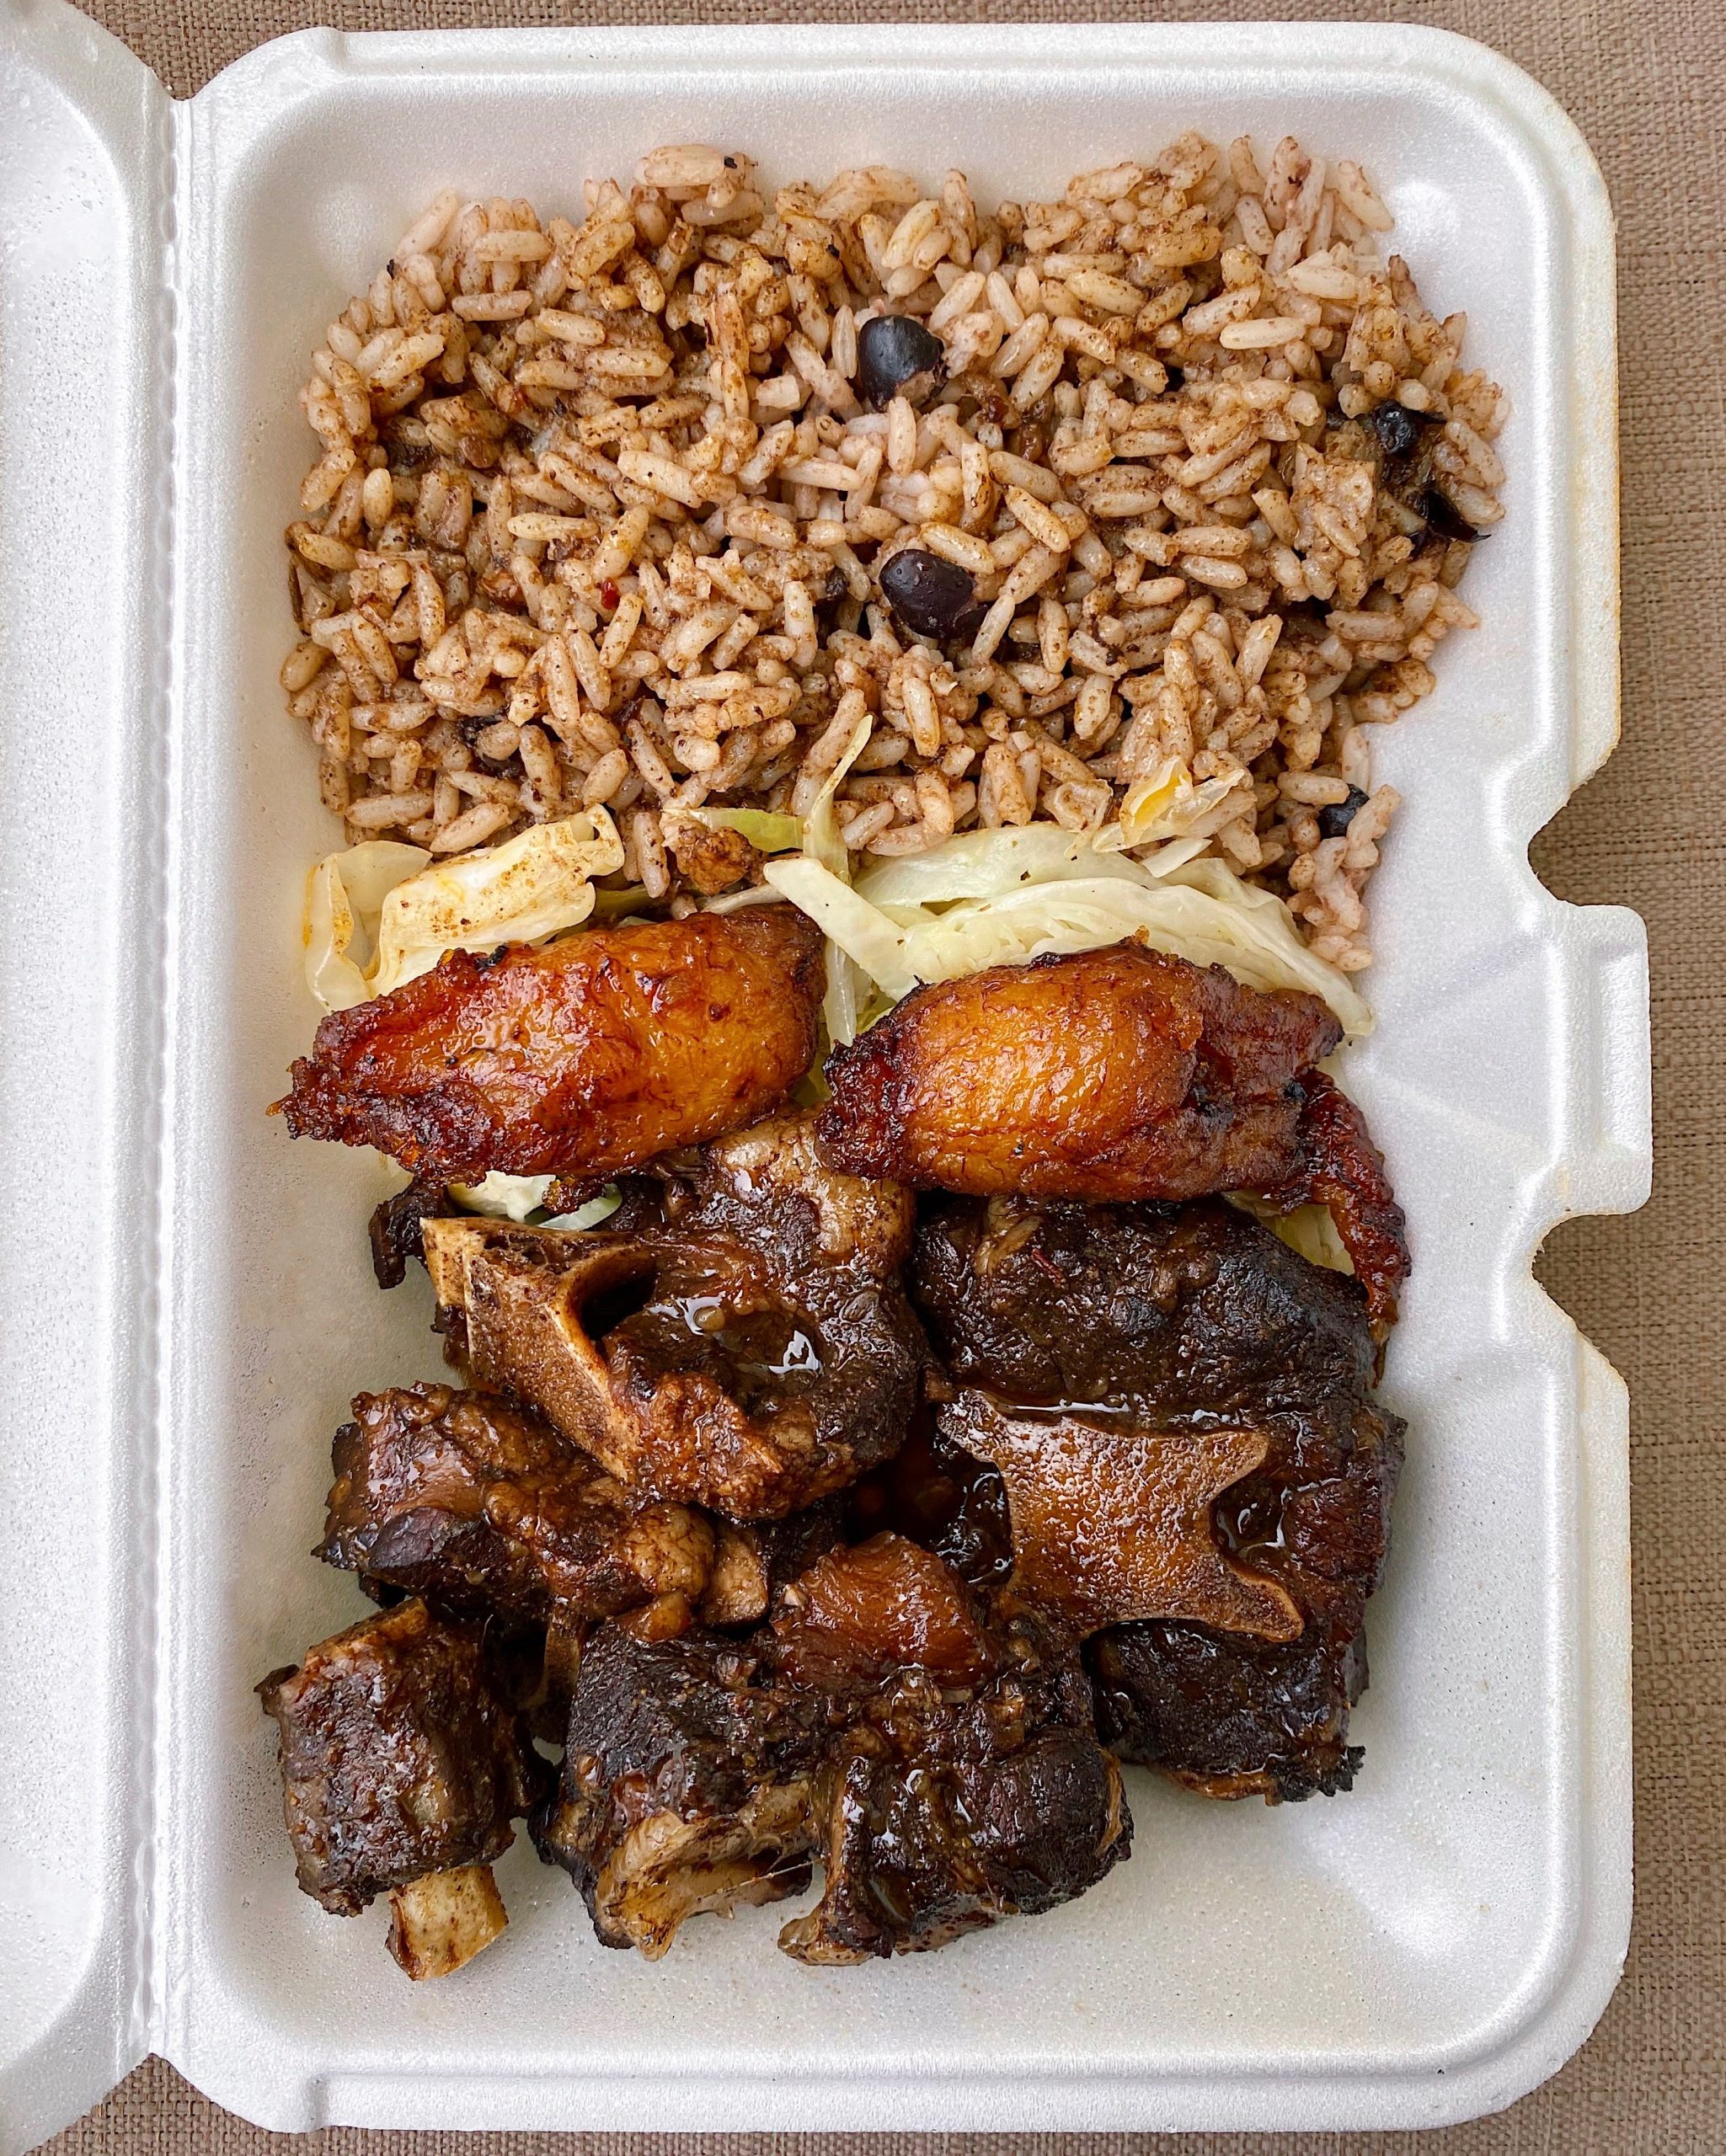 Jamaican Oxtail from Tony's Jamaican Food in Austin, TX